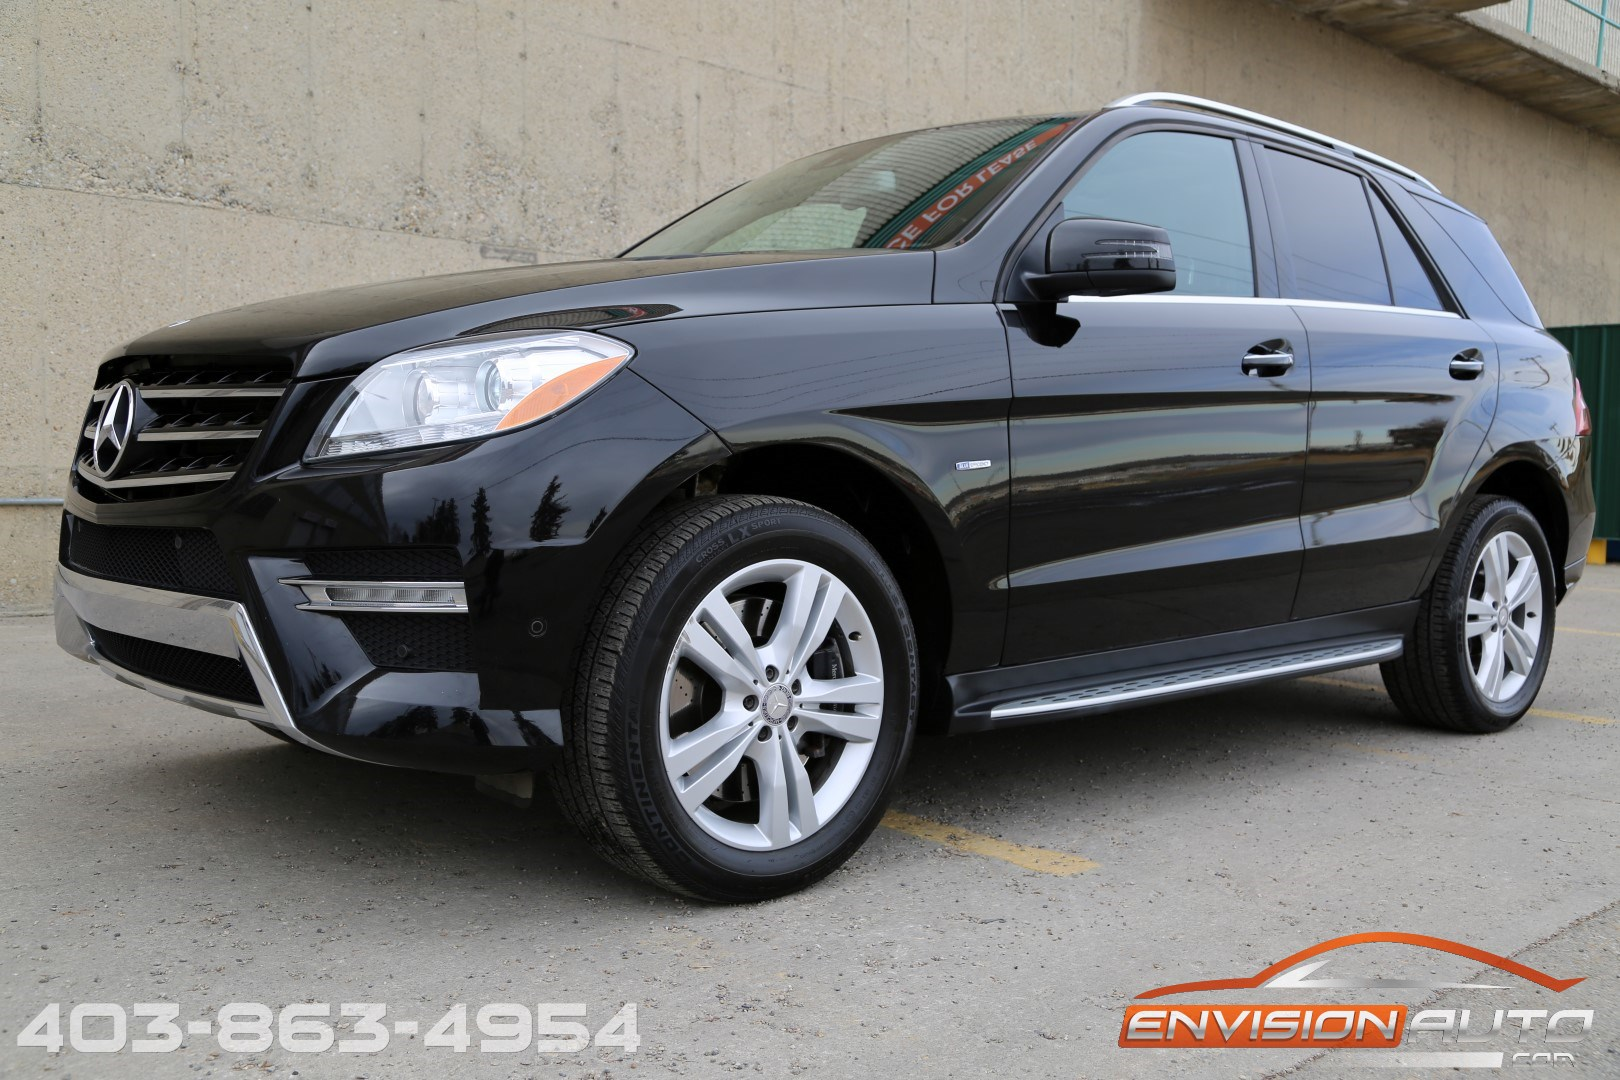 2012 mercedes benz ml350 4matic envision auto. Black Bedroom Furniture Sets. Home Design Ideas